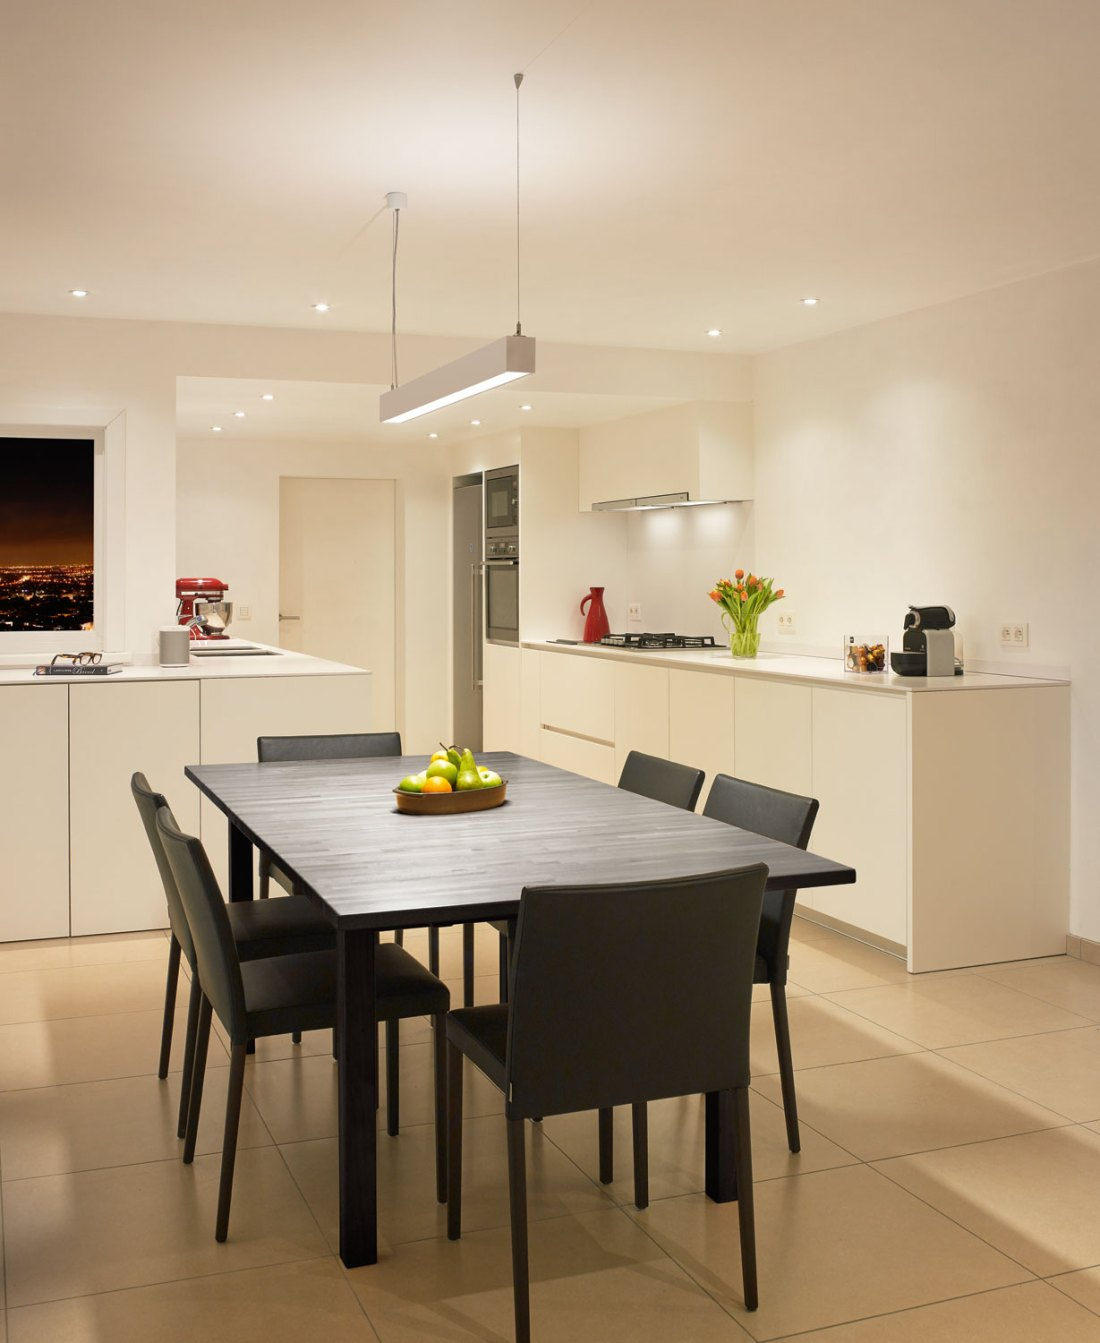 How to illuminate your kitchen countertop if you do not have upper cabinets or shelves 01